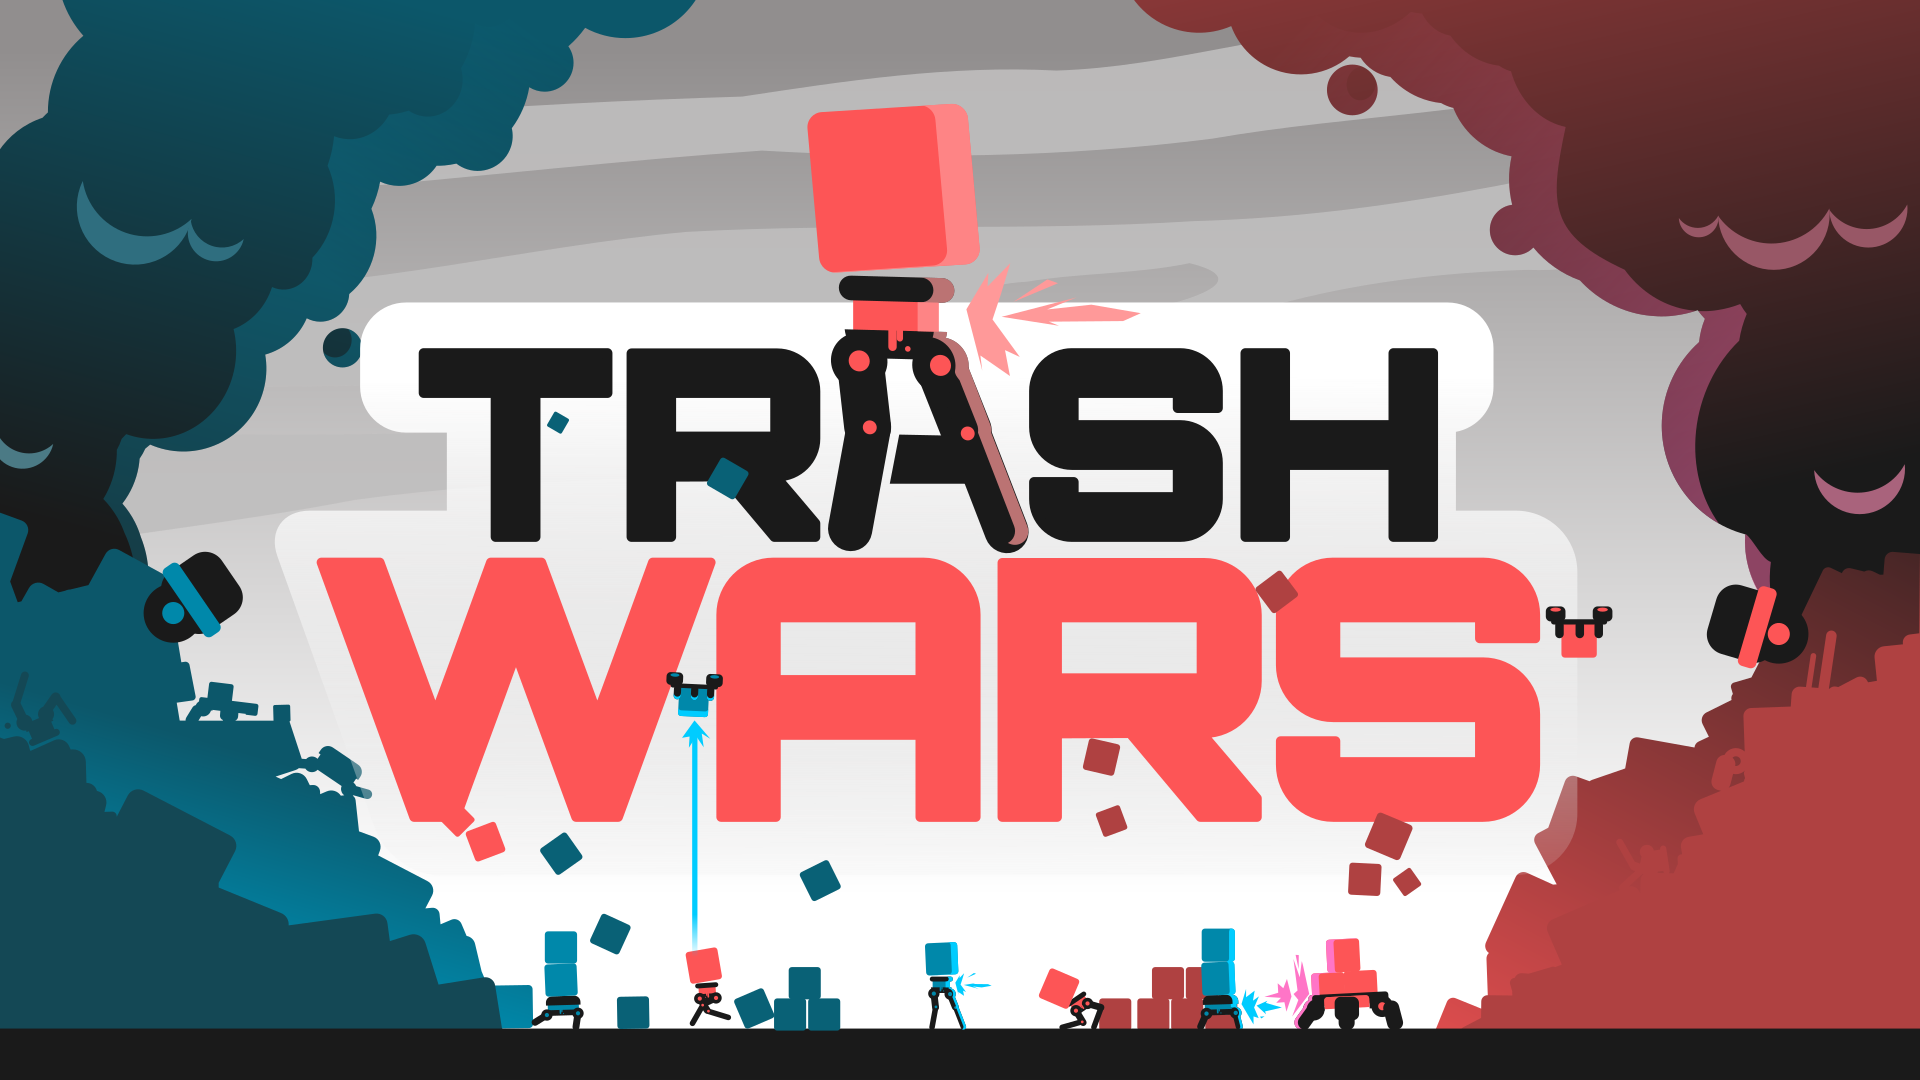 Trash wars